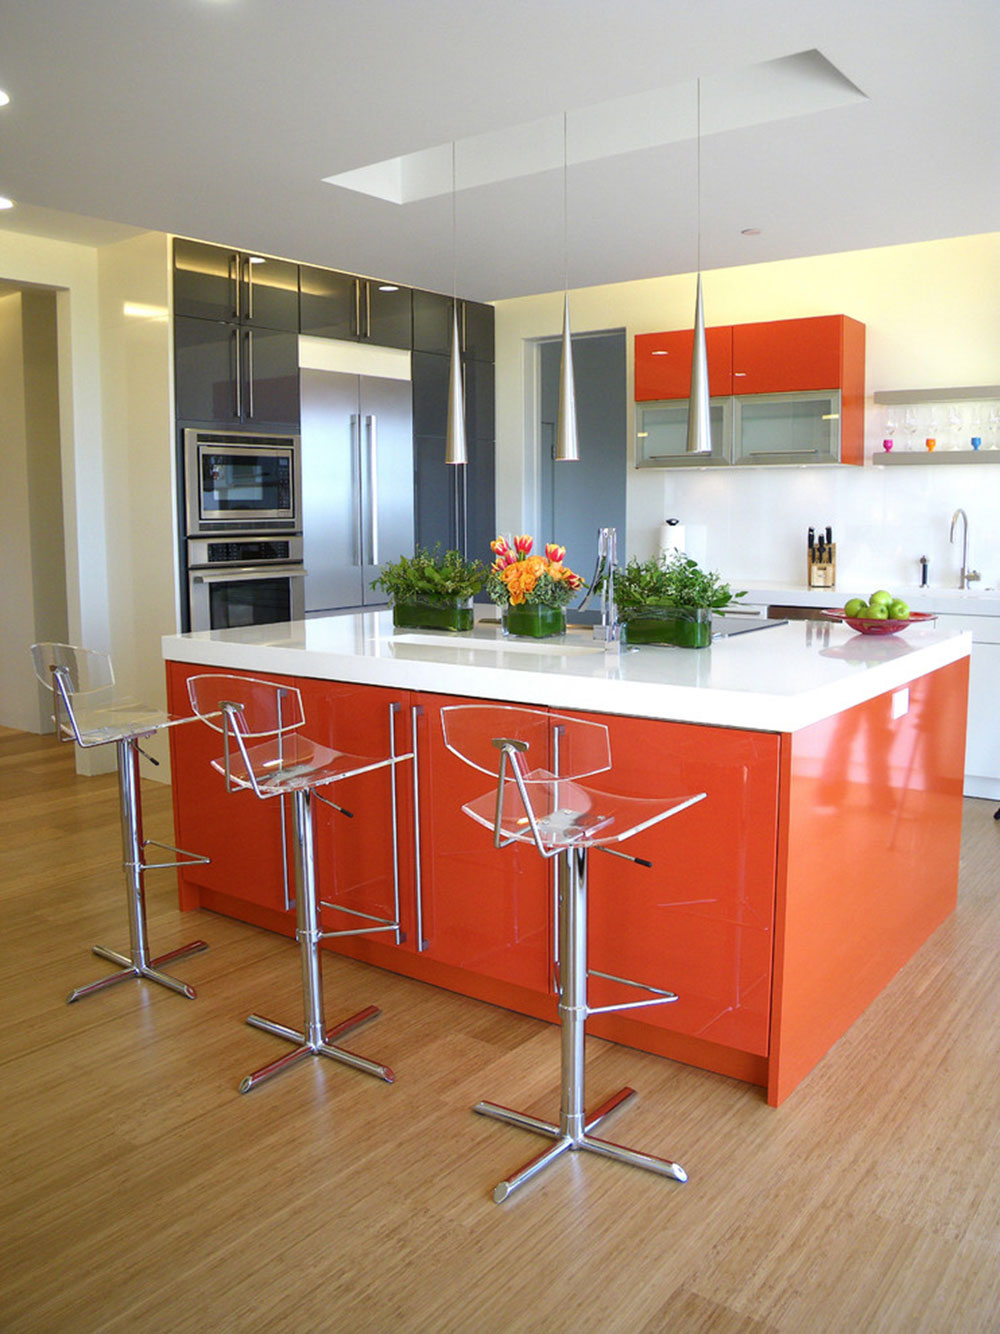 Choosing Good Kitchen Furniture Could Be A Challenge13